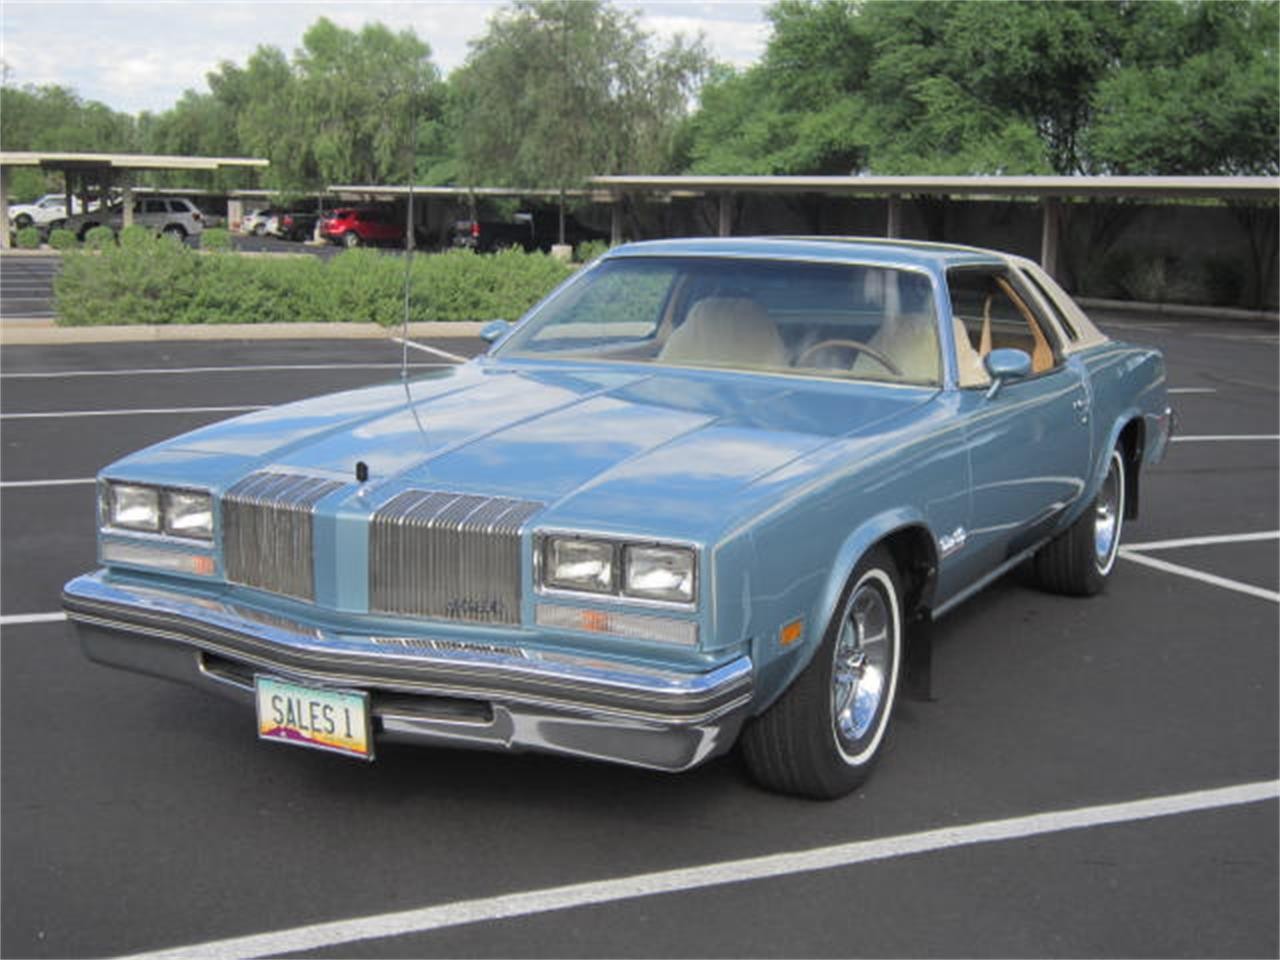 Large Picture of 1977 Cutlass located in Glendale Arizona - $15,000.00 - DISY